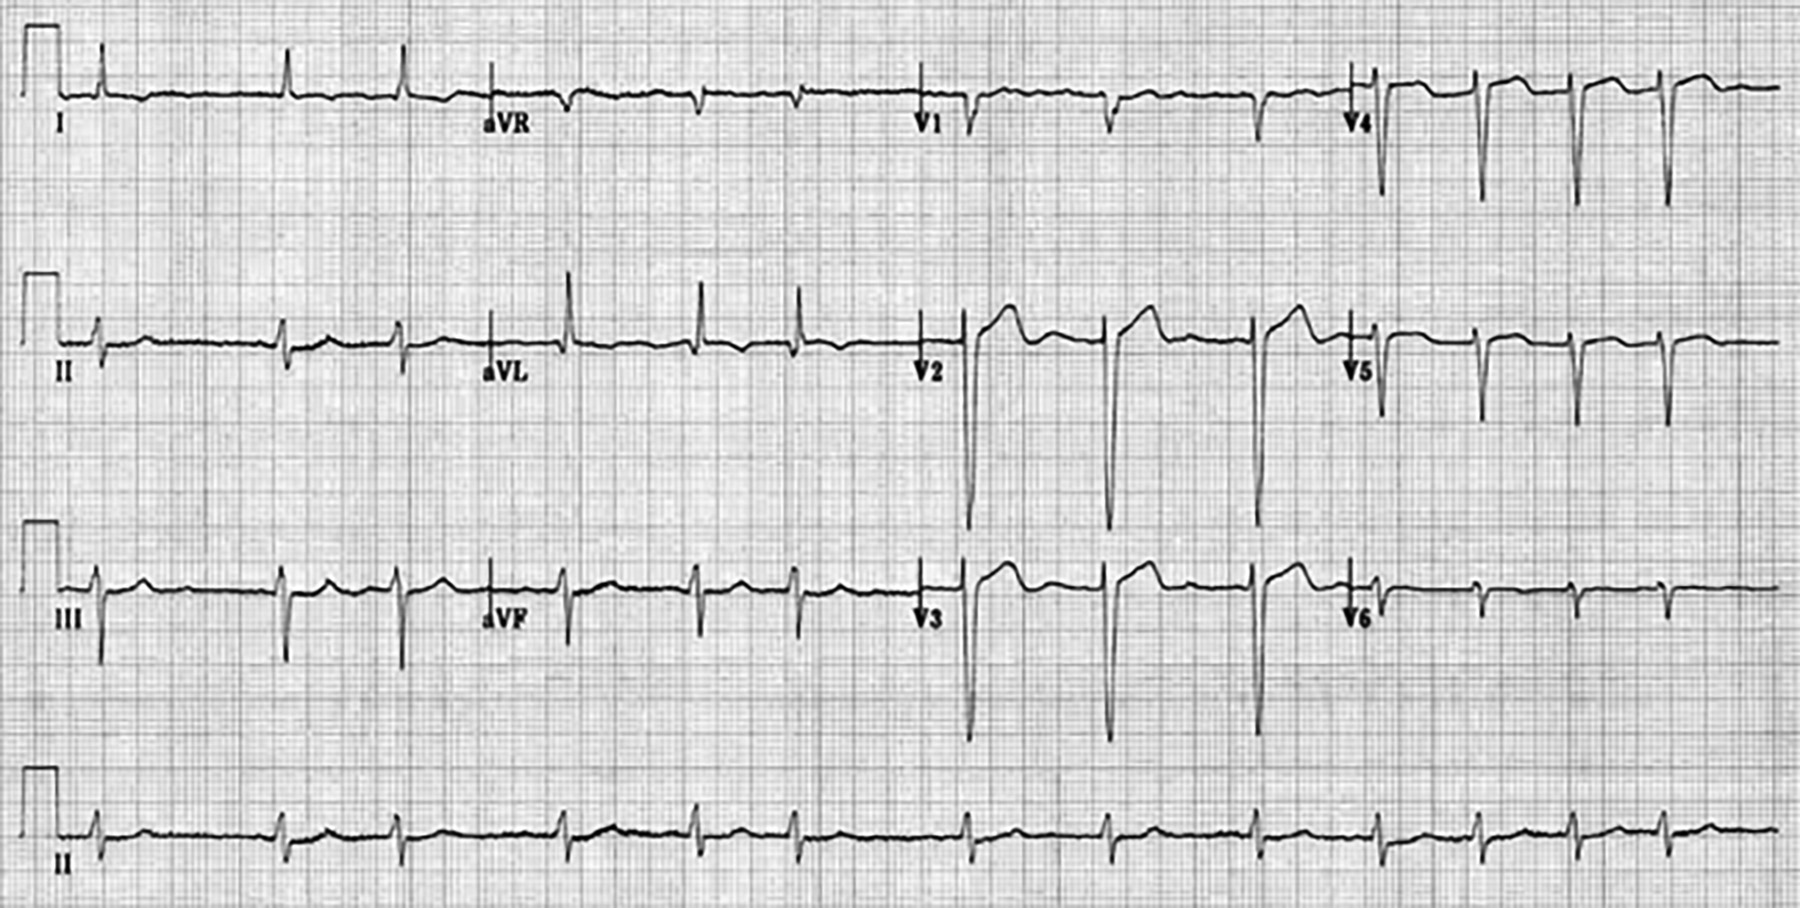 Atrial fibrillation with fine waves